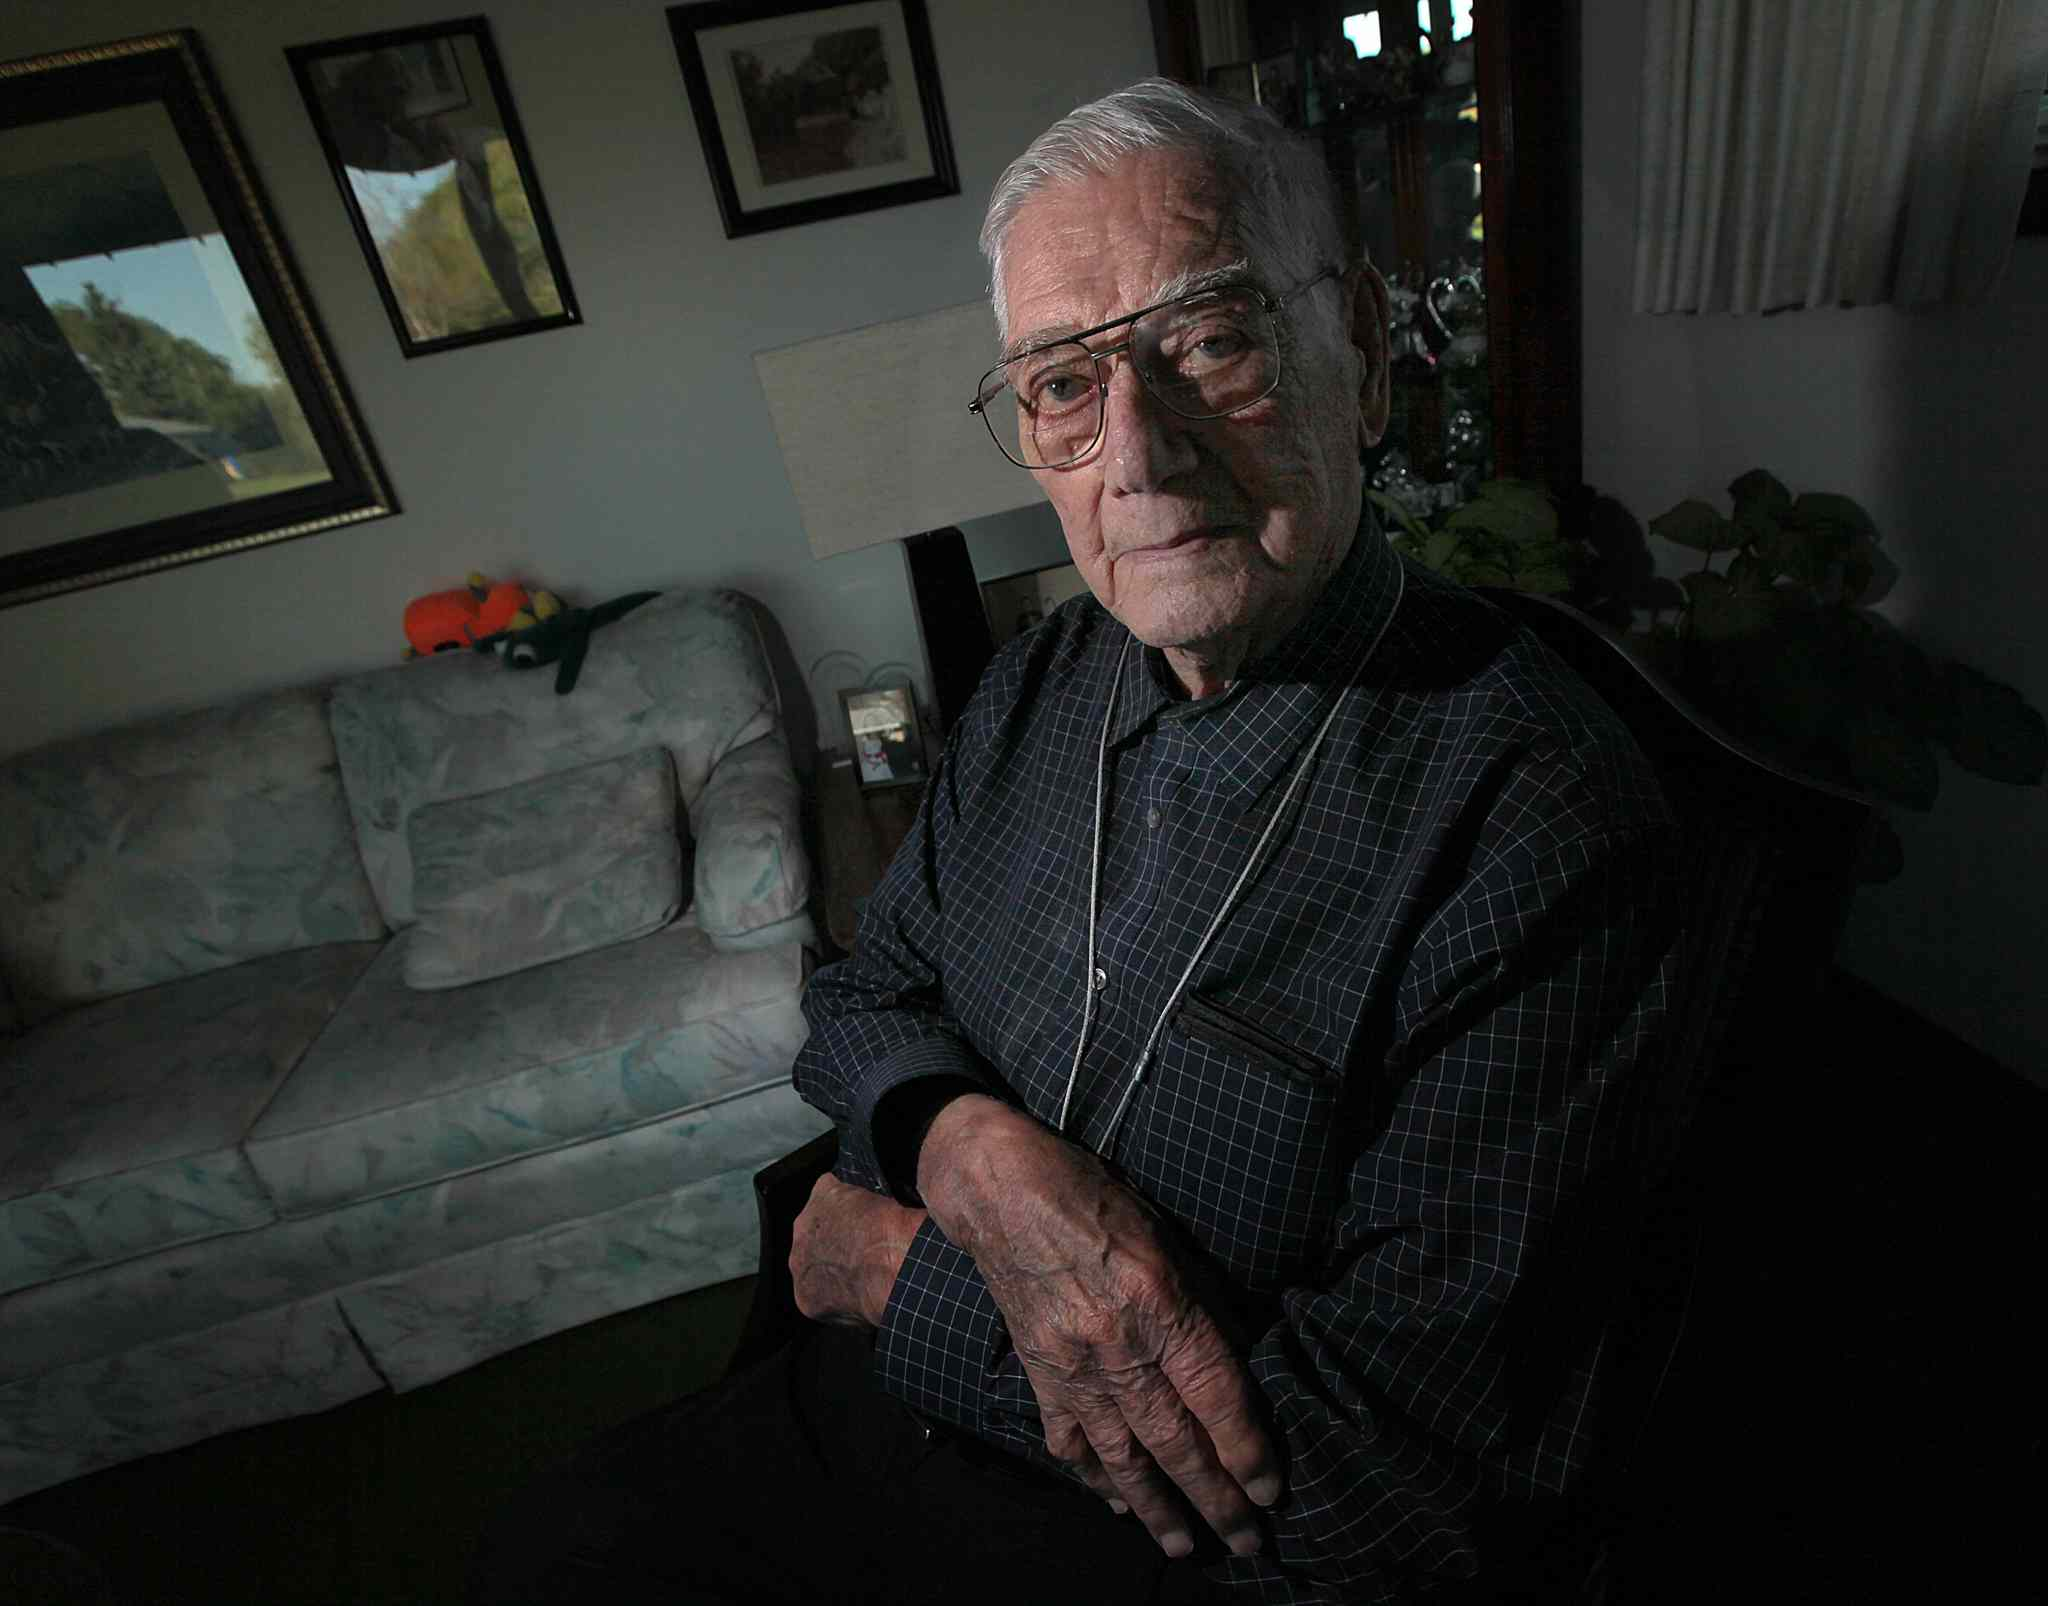 Arthur Christensen, 99, served as reeve and councillor for 21 years in West St. Paul.